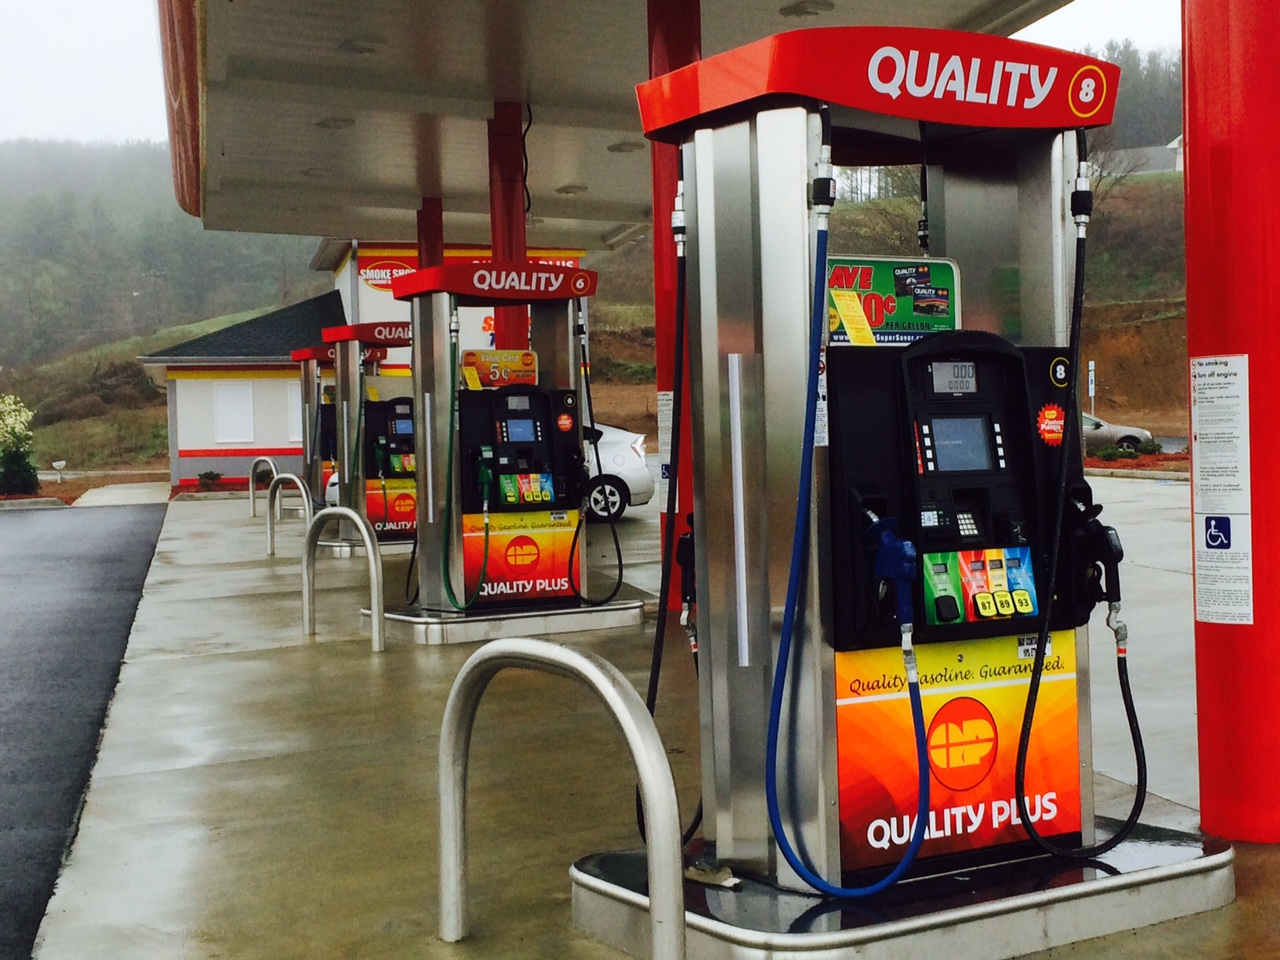 93 Octane Gas >> Your Local Gas Station & Discount Tobacco Shop. Fastest Pumps in Town.